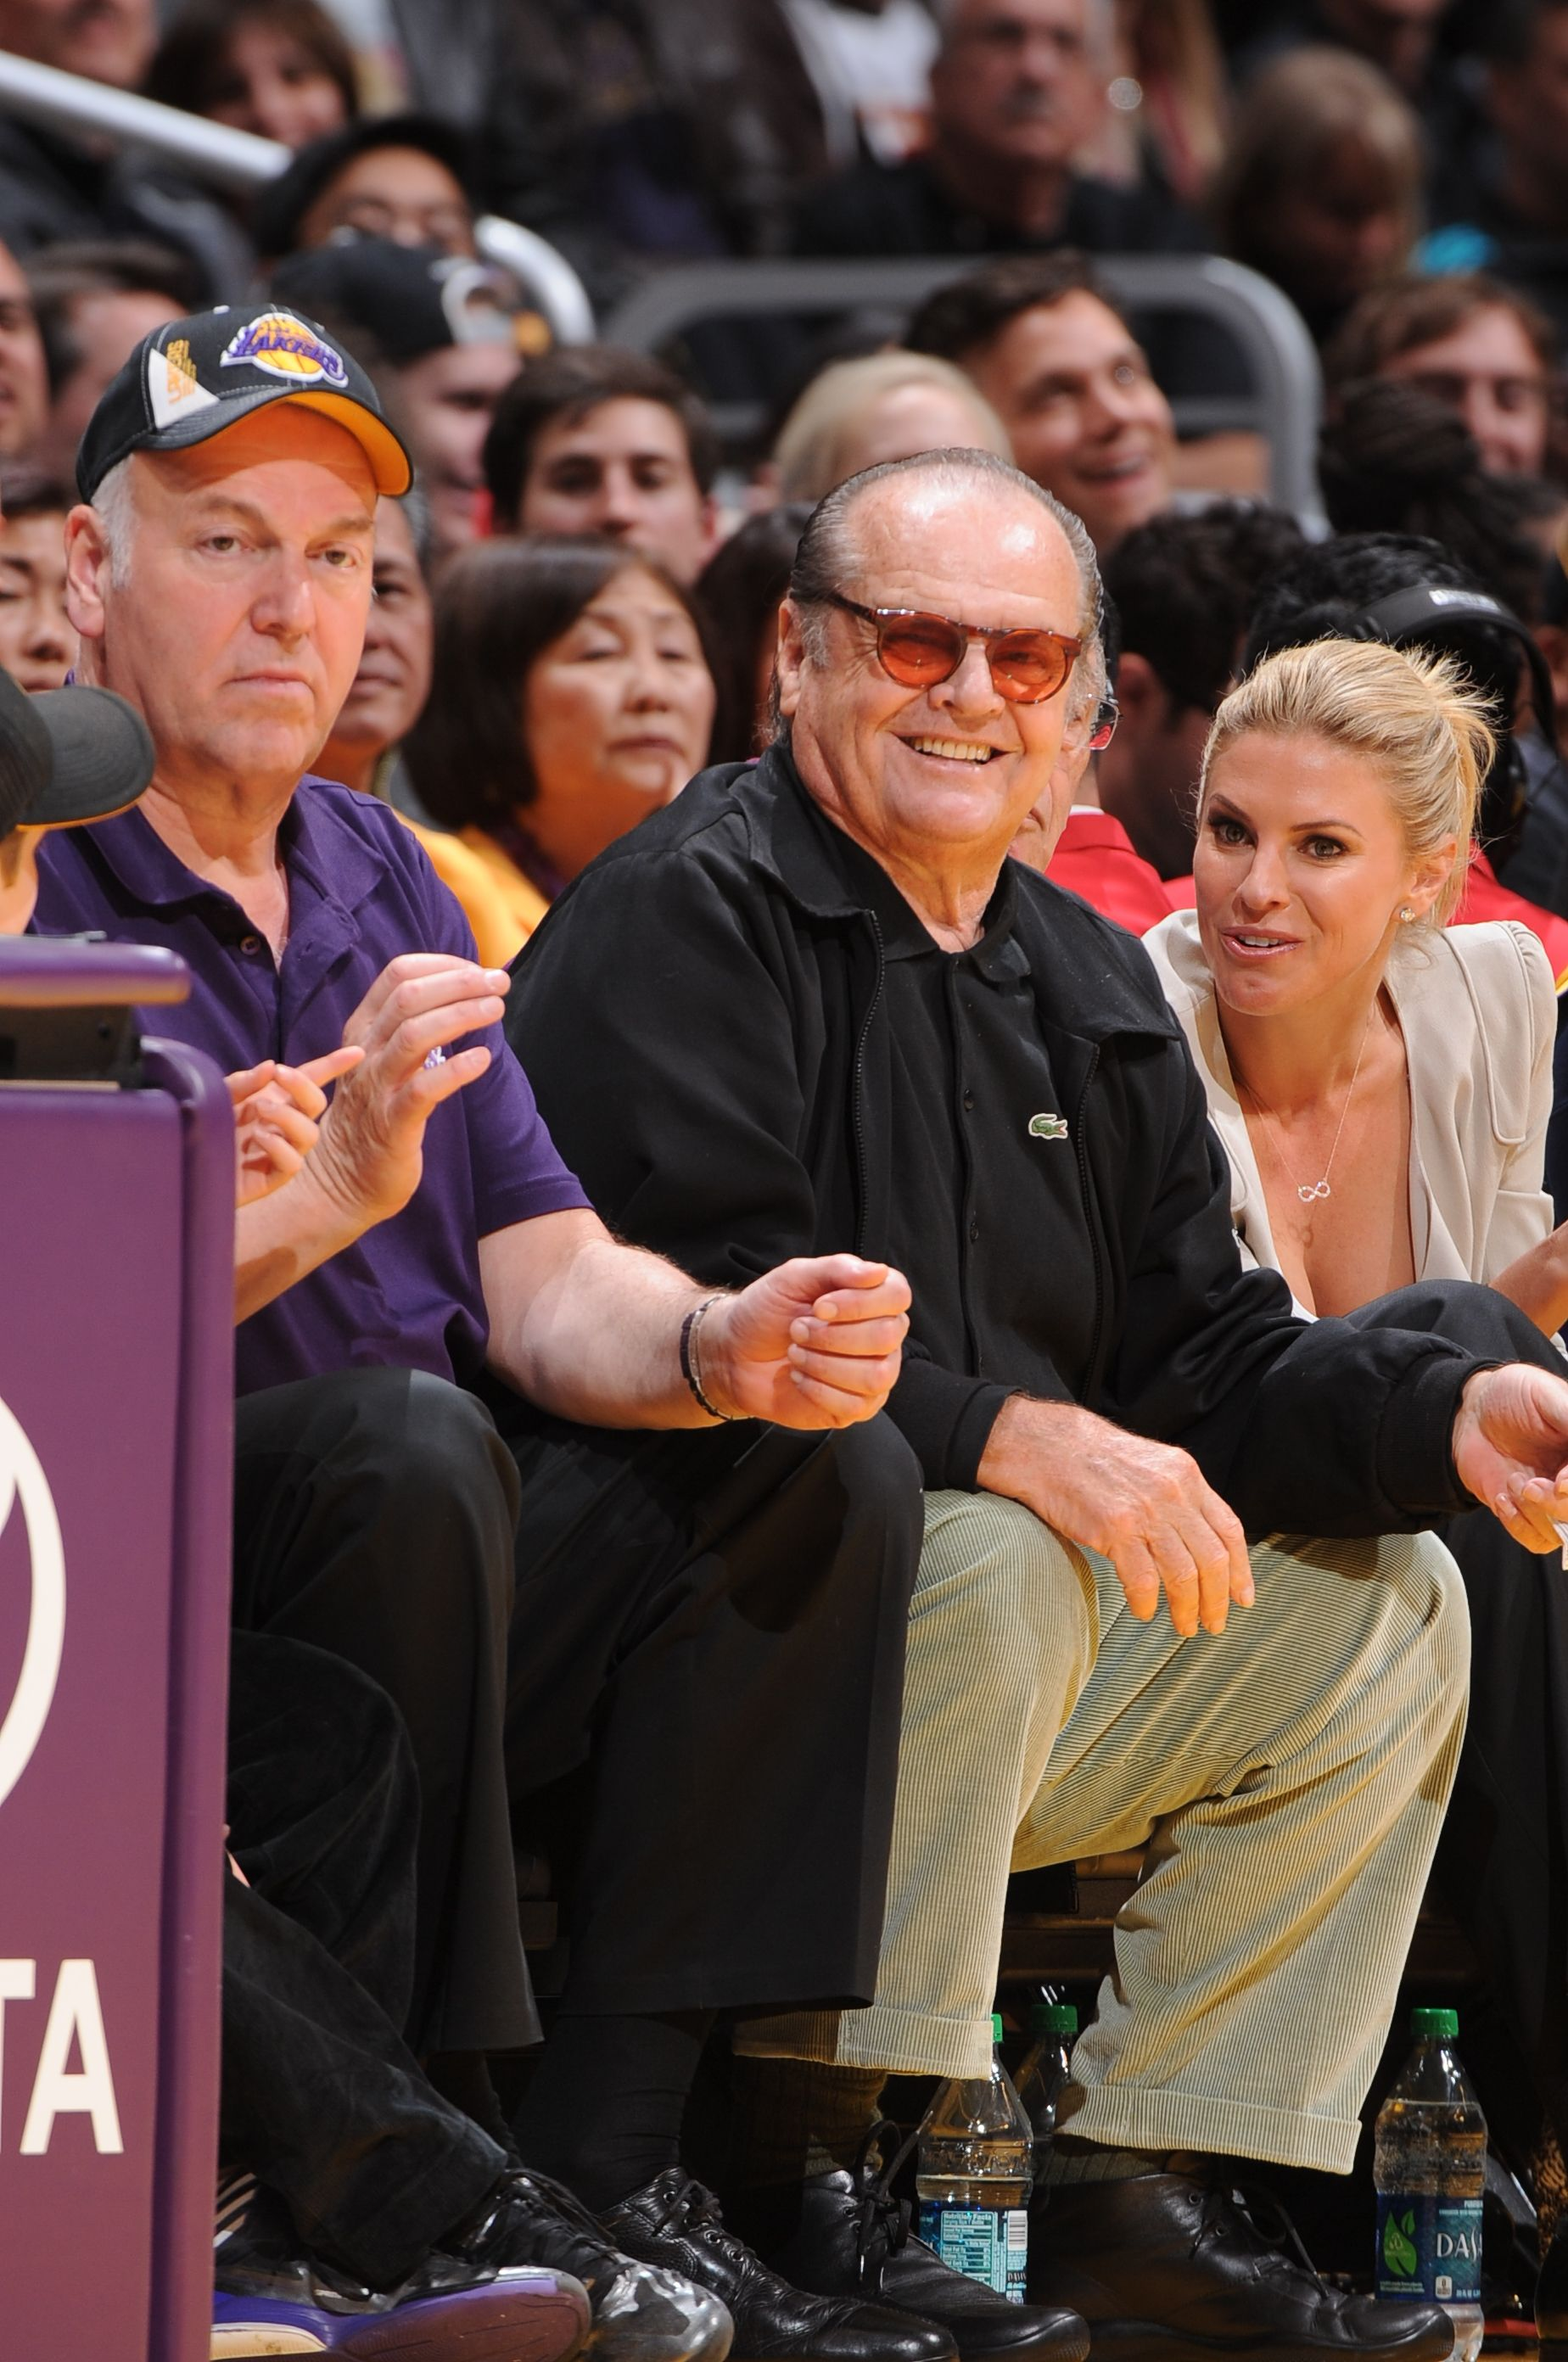 Jack Nicholson Courtside At The Los Angeles Lakers Game Vs The San Antonio Spurs Jack Nicholson Lakers Game Celebrities